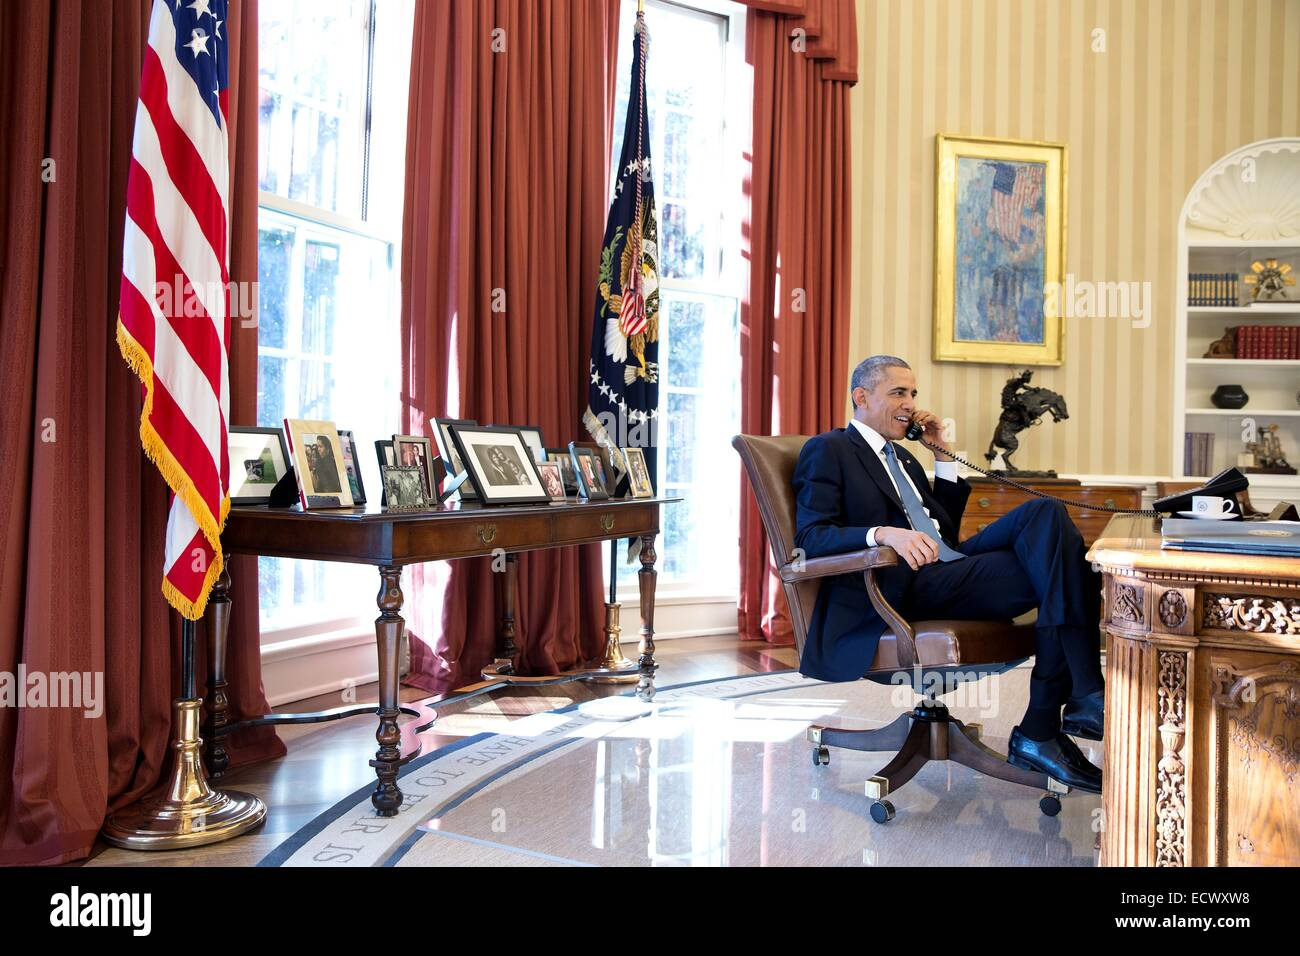 US President Barack Obama speaks by phone with released prisoner Alan Gross from the Oval Office of the White House - Stock Image